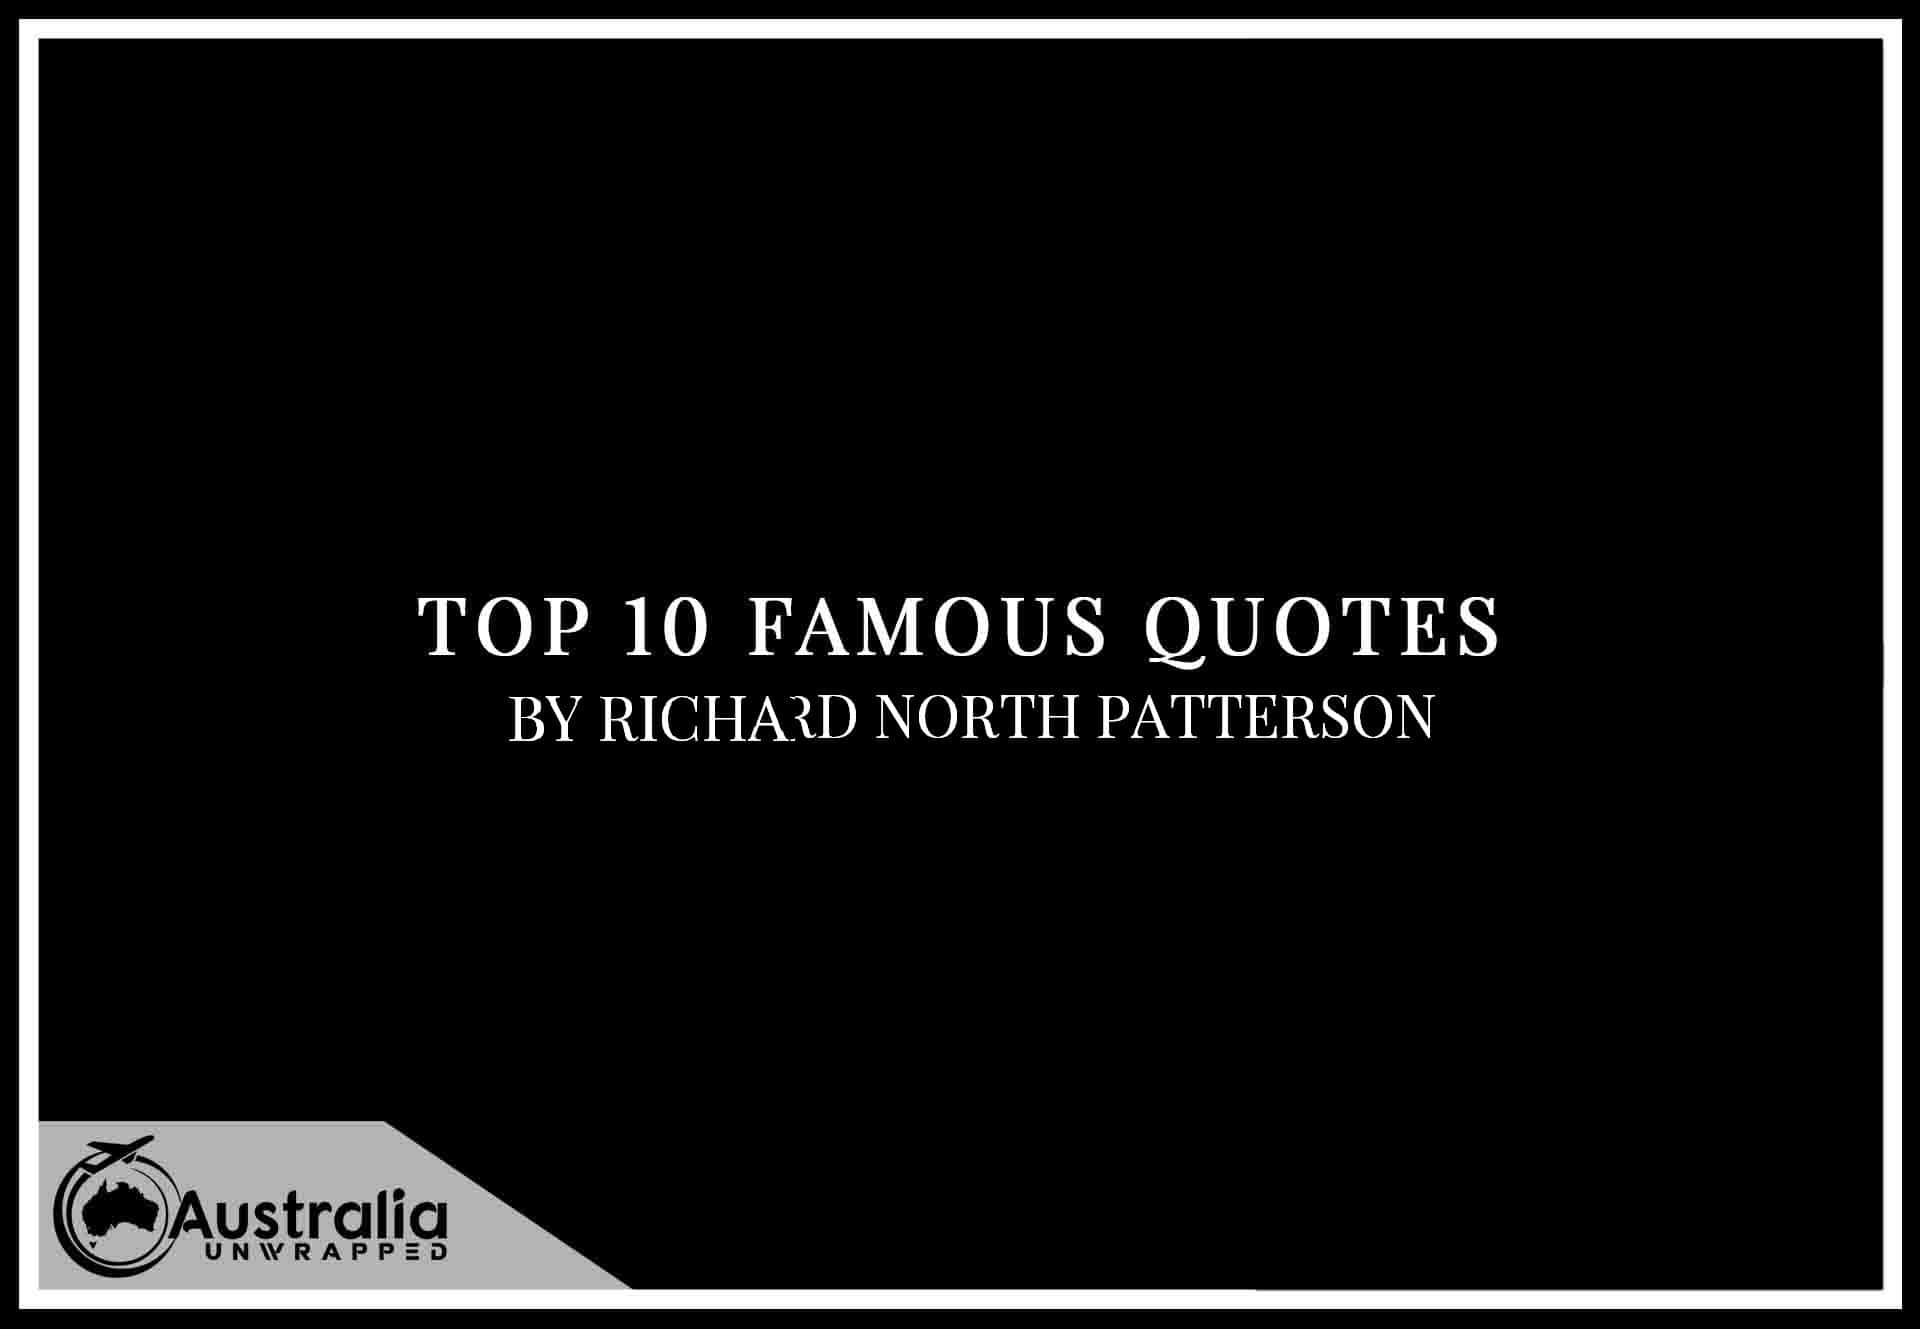 Top 10 Famous Quotes by Author Richard North Patterson